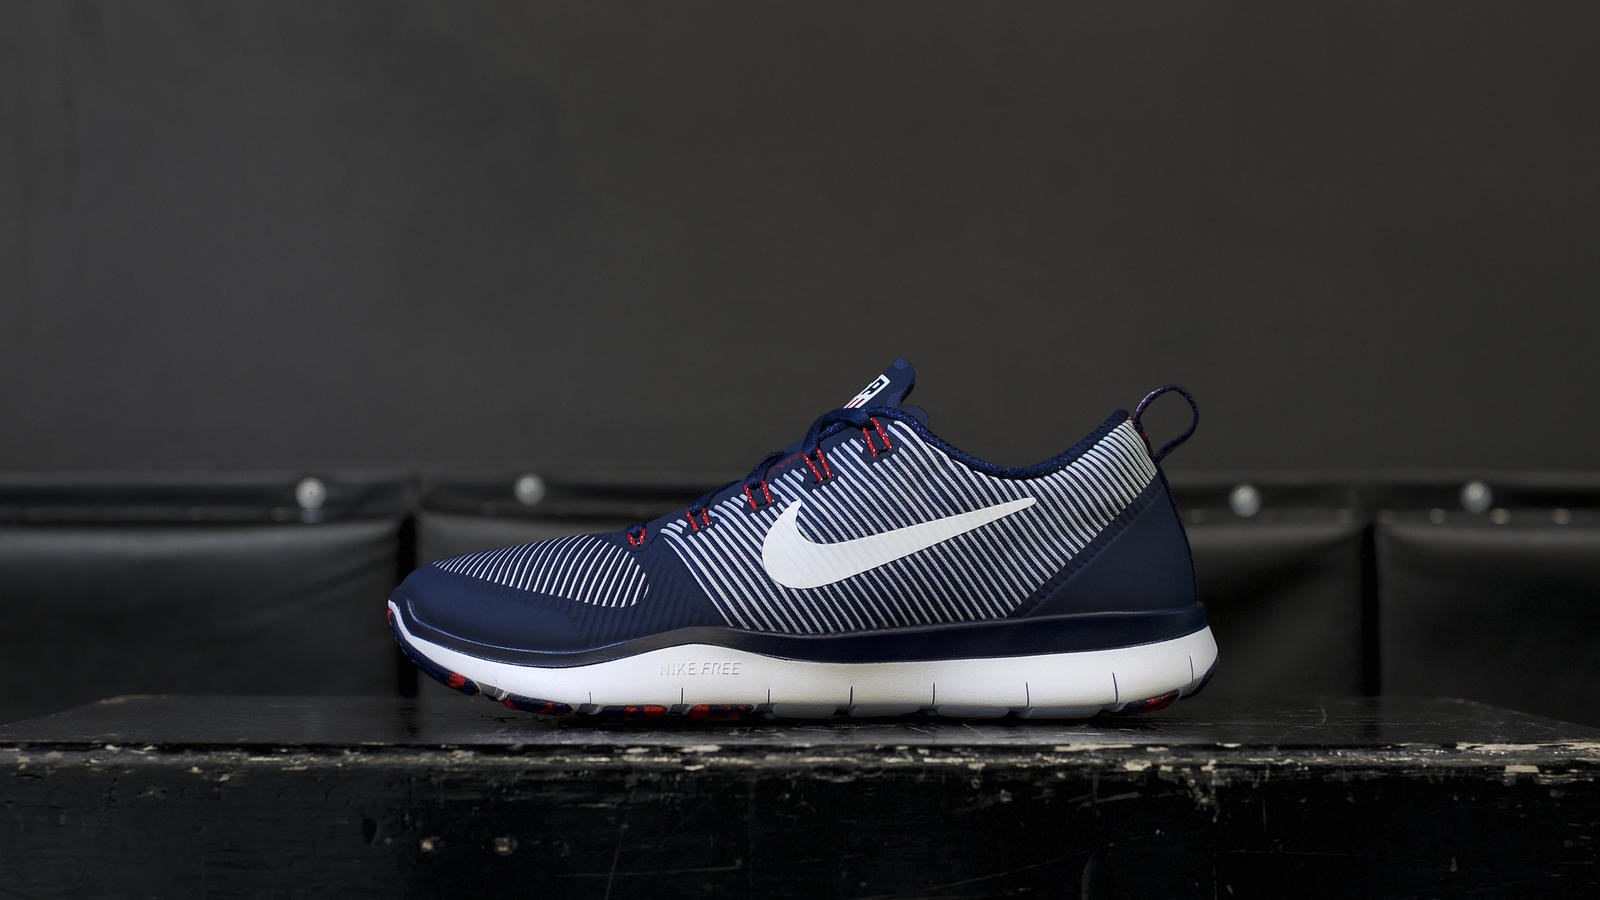 official photos e1813 6a839 Nike Free TR Versatility Amp (USA)